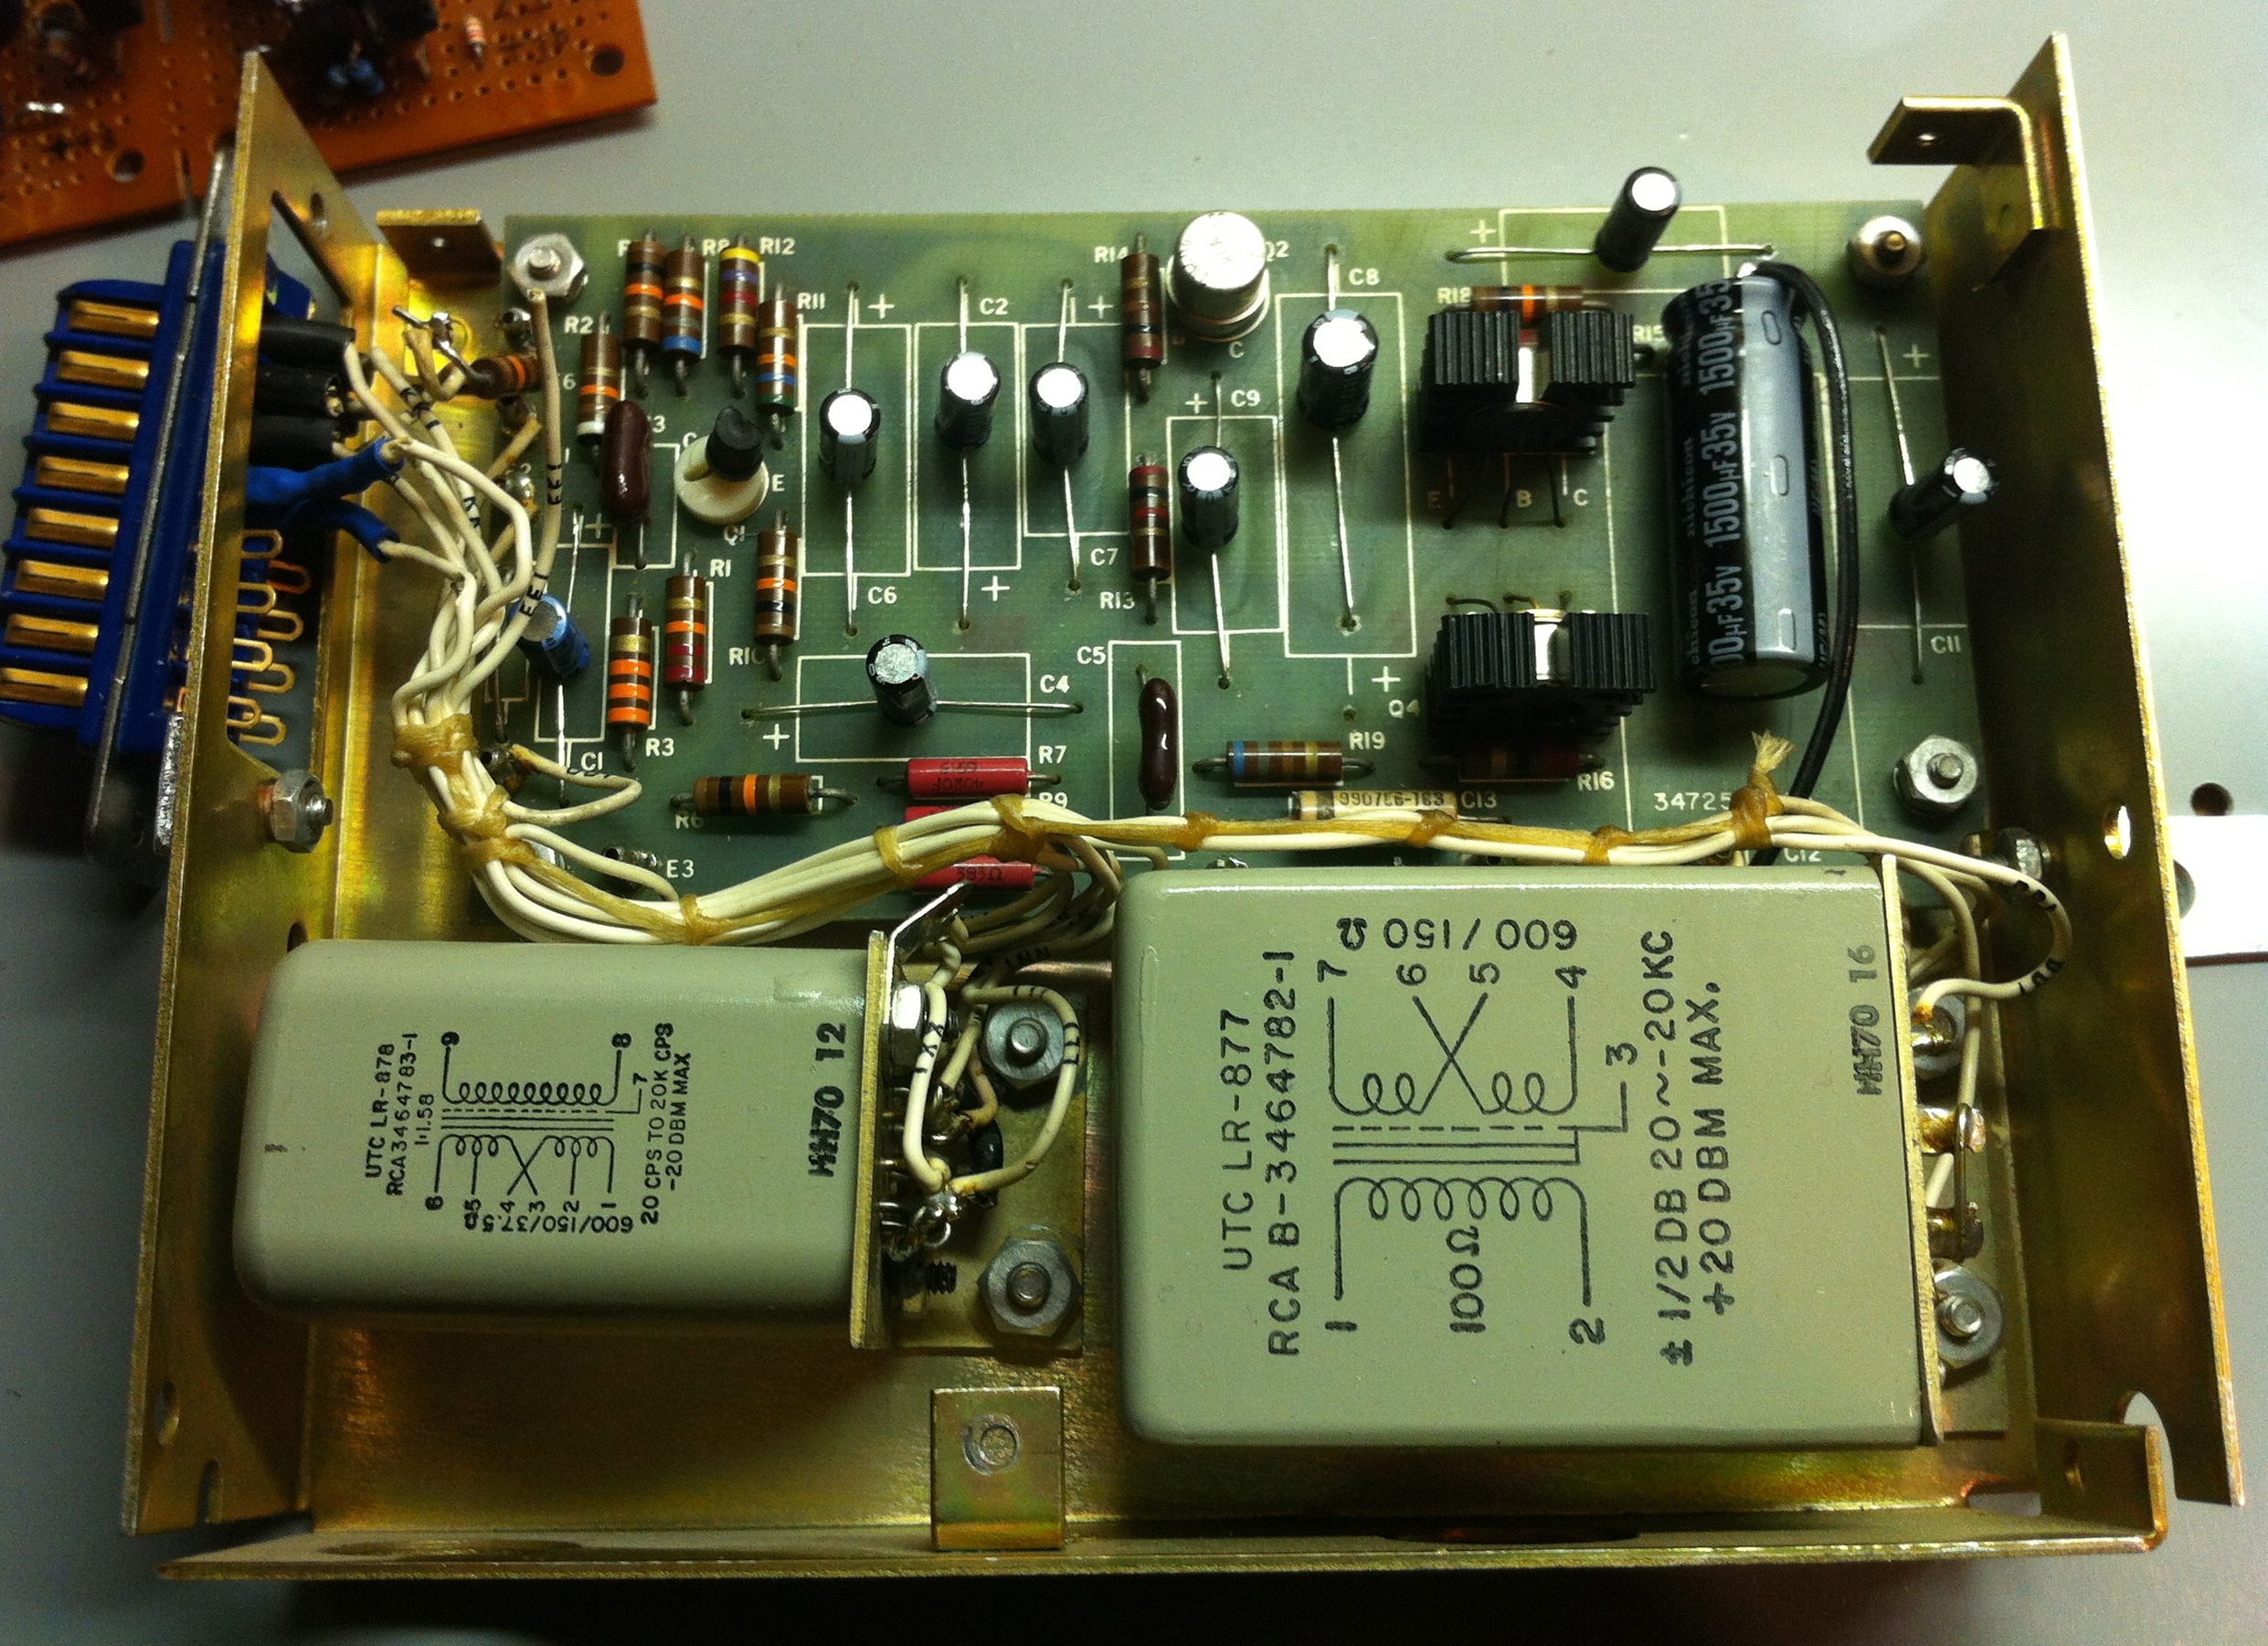 Discrete Transistor Analog Audio Repair Line Highend Preamplifier With Ics Recapped Rca Ba 71 72 31